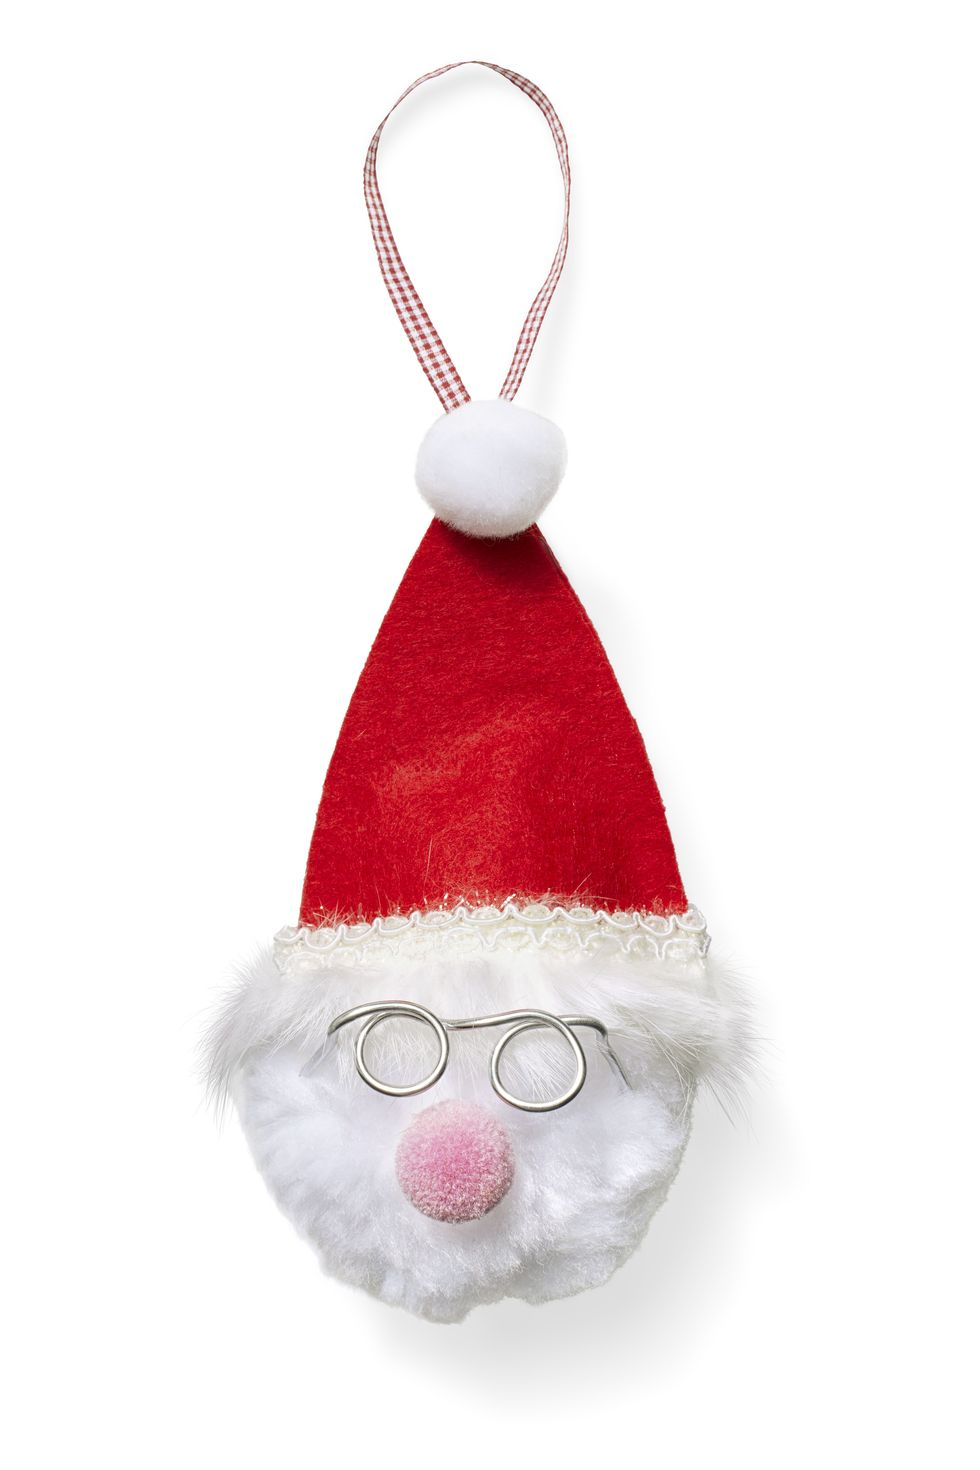 20 Cute and Simple Christmas Crafts for Everyone   The Saw Guy in ...